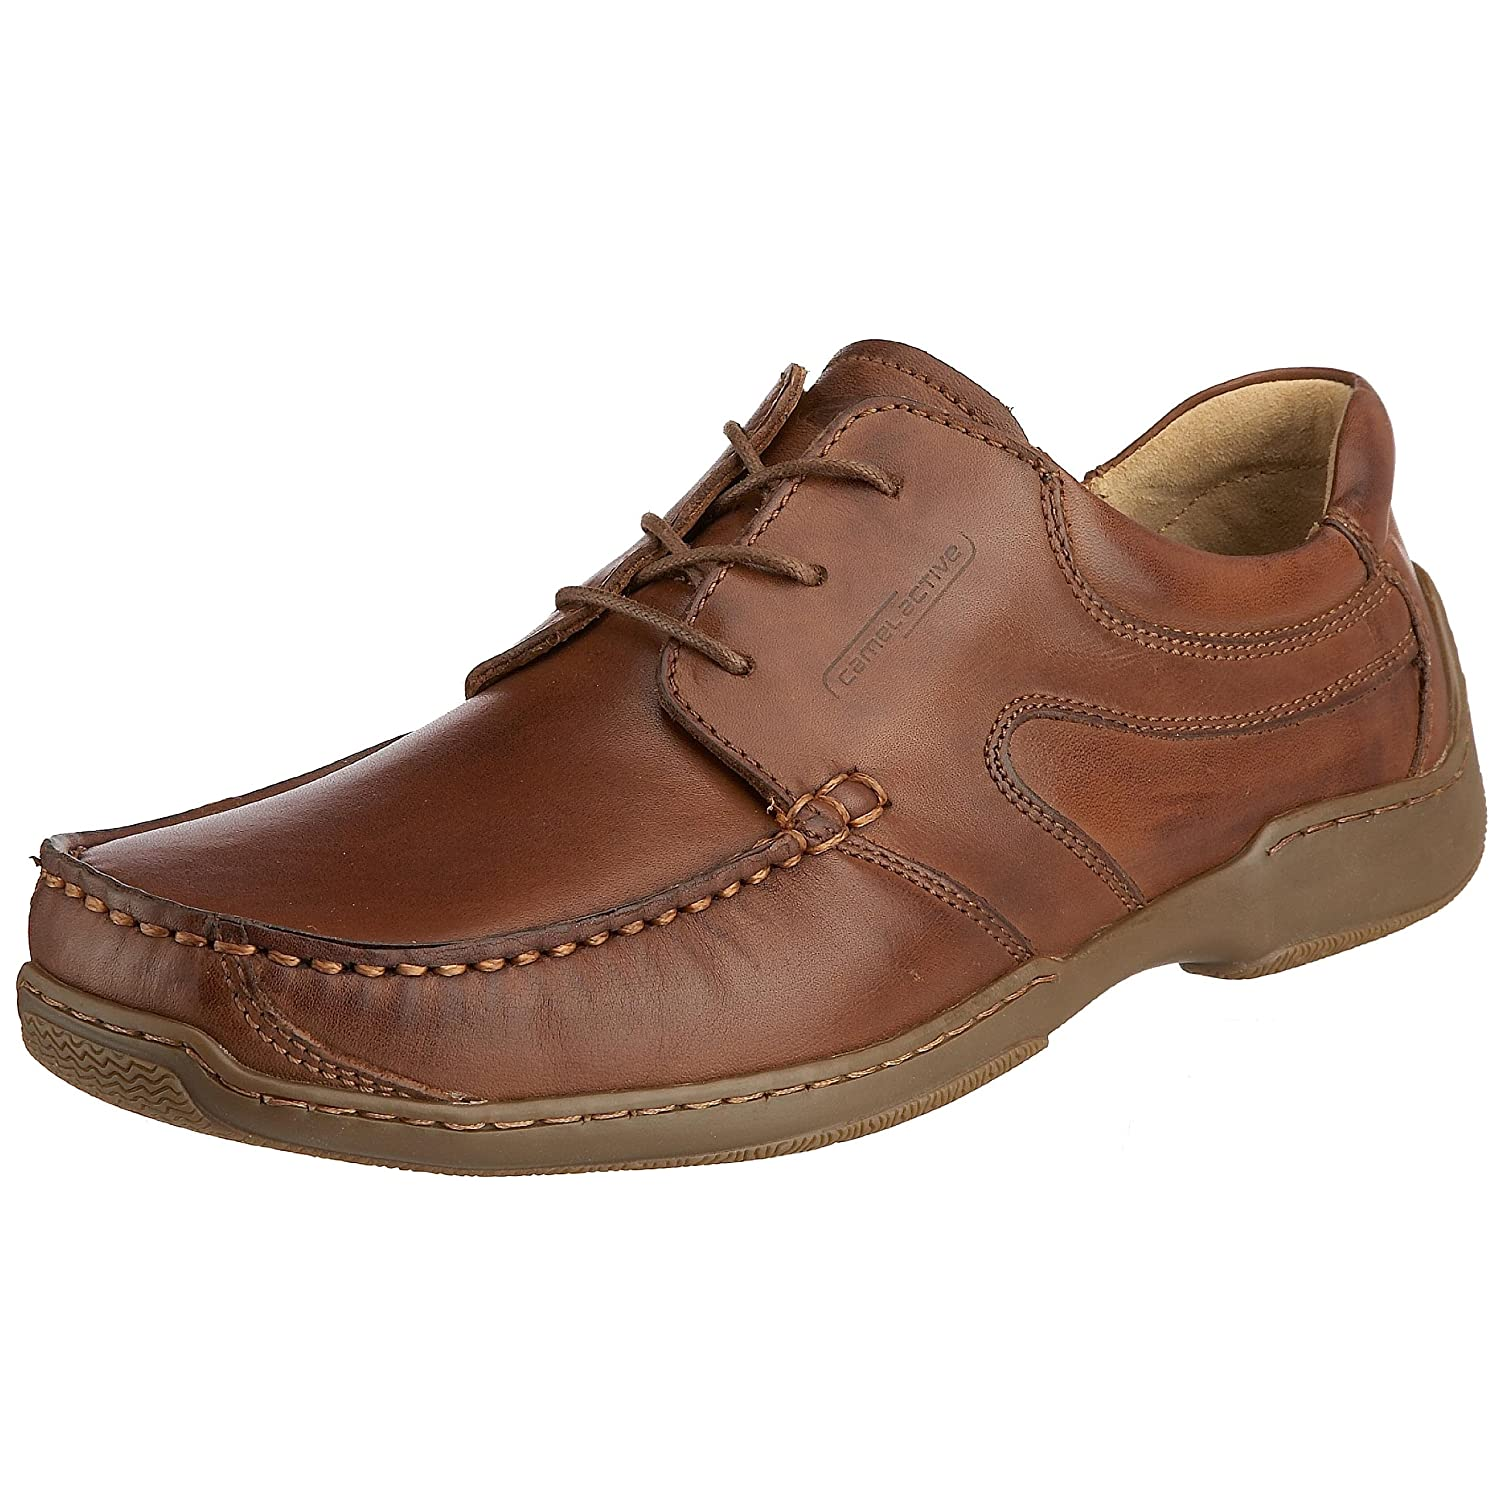 62b125dbefe6 Camel Active Men's Madrid Mocasin Brandy Burn 171.11.03 10.5 UK ...